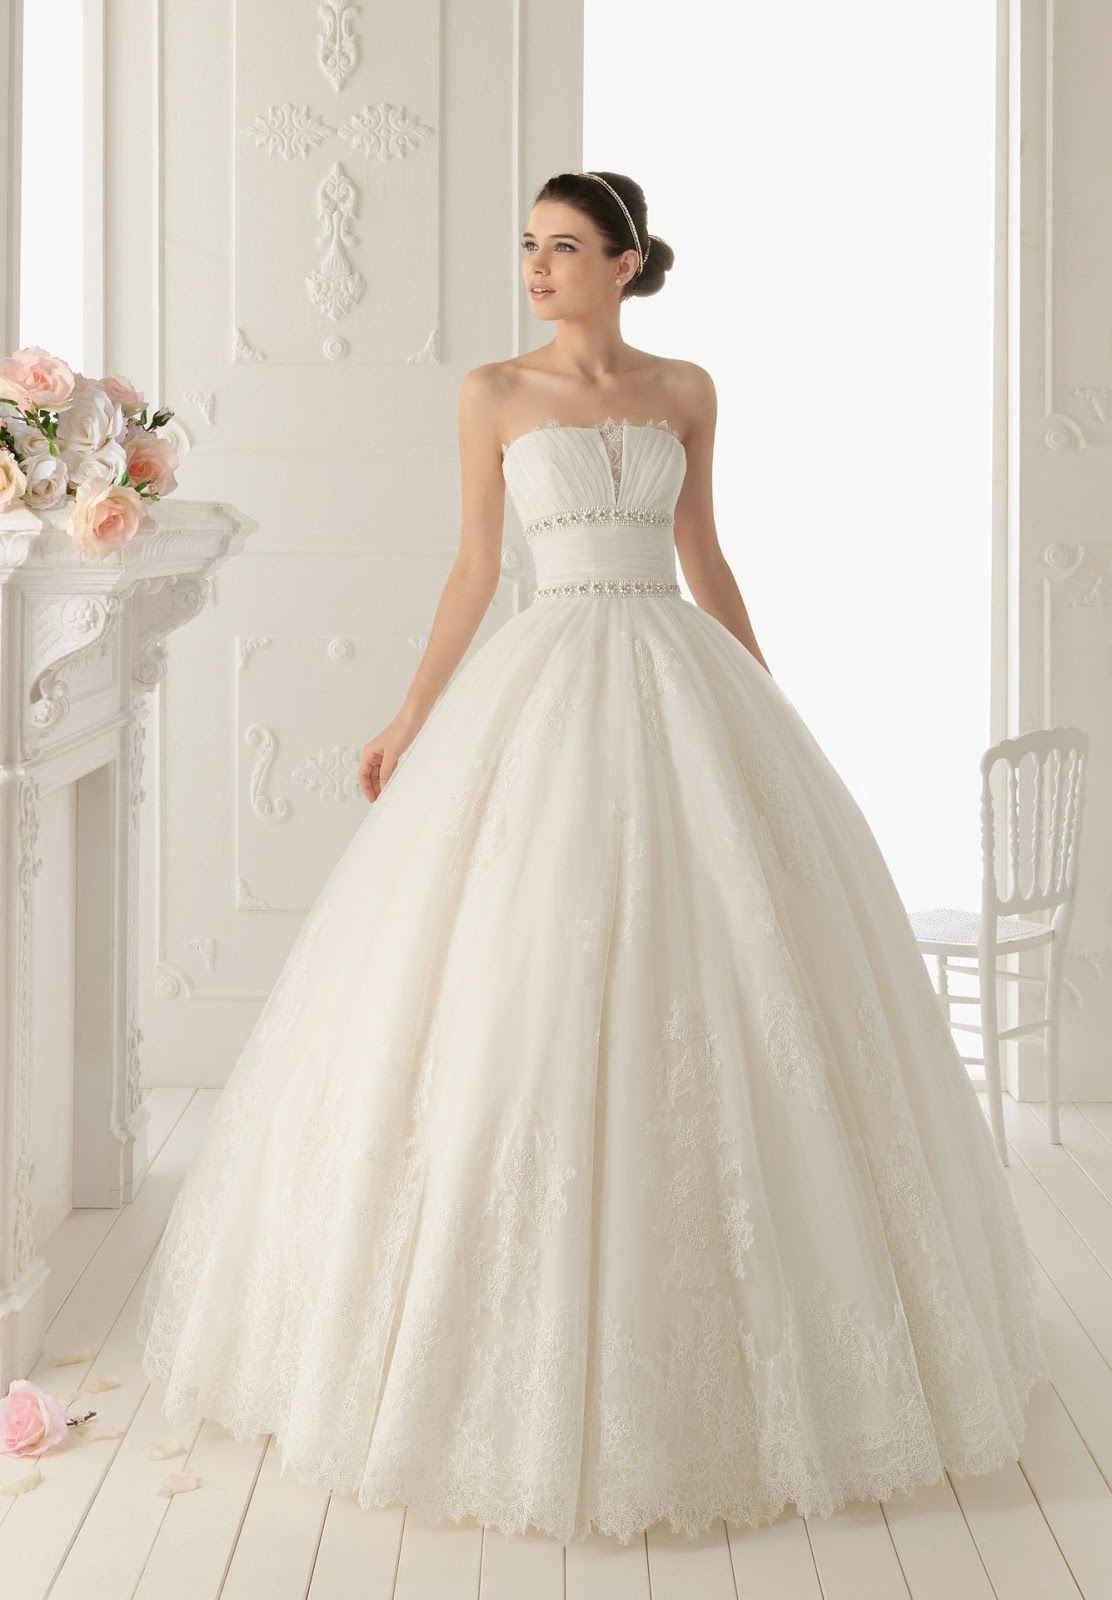 Image Result For Fancy Wedding Dresses